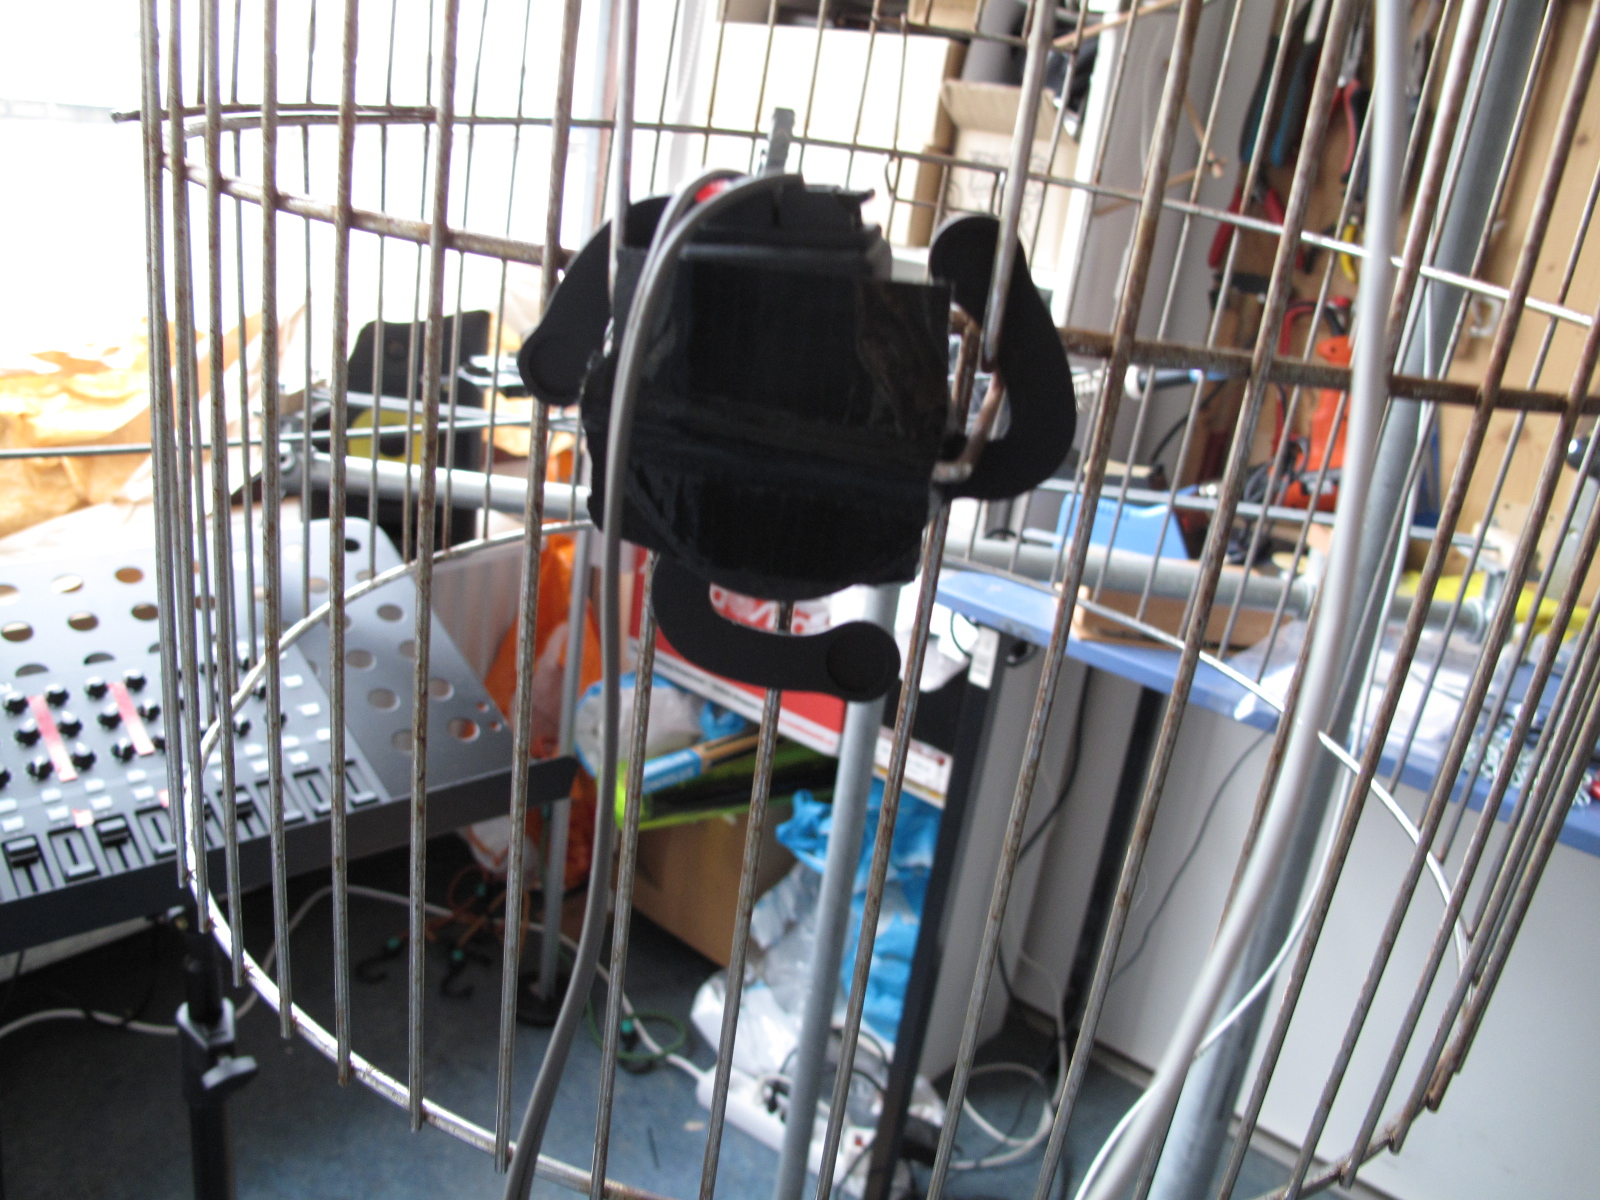 The tactile transducer bird cage exciter body shaker